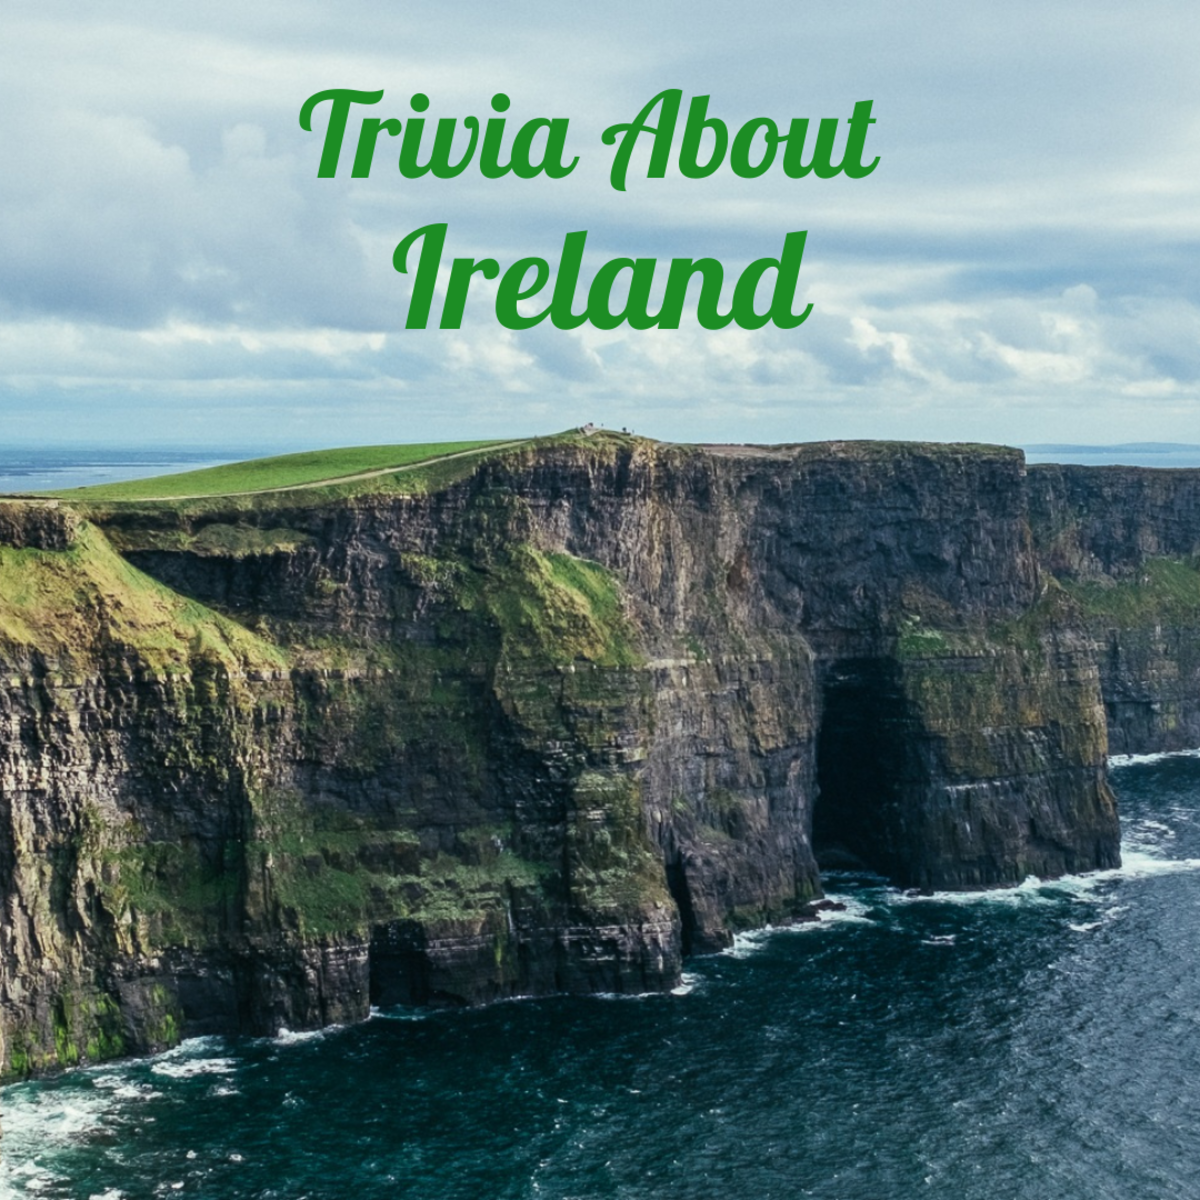 Trivia perfect for St Patrick's day or any Irish-themed event